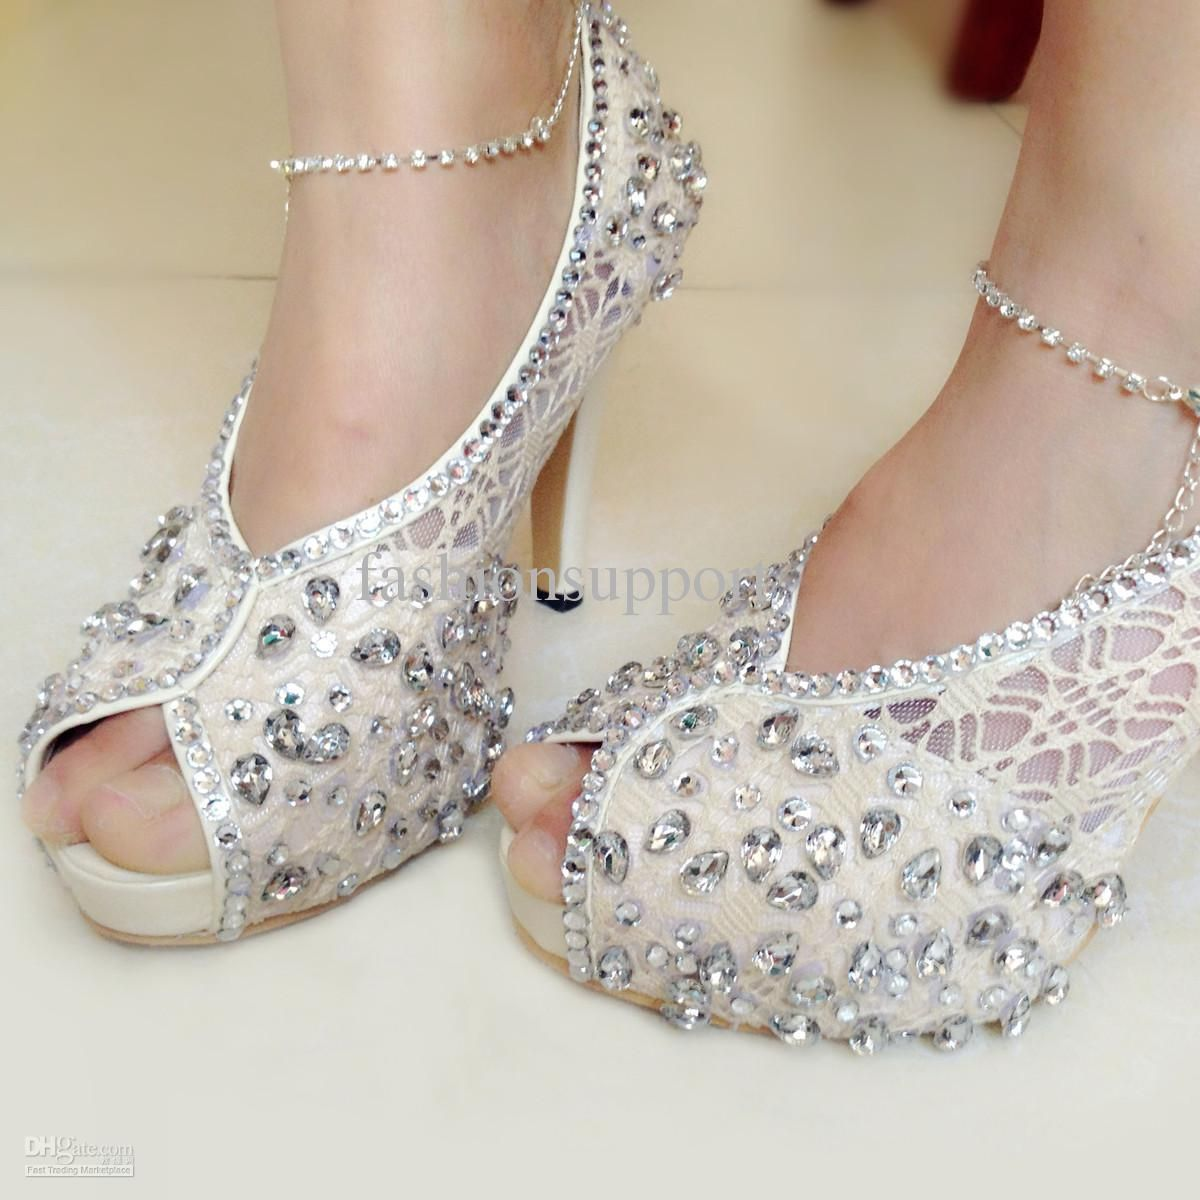 Princess Crystal Colour Lace High Heels P Toe Wedding Shoes